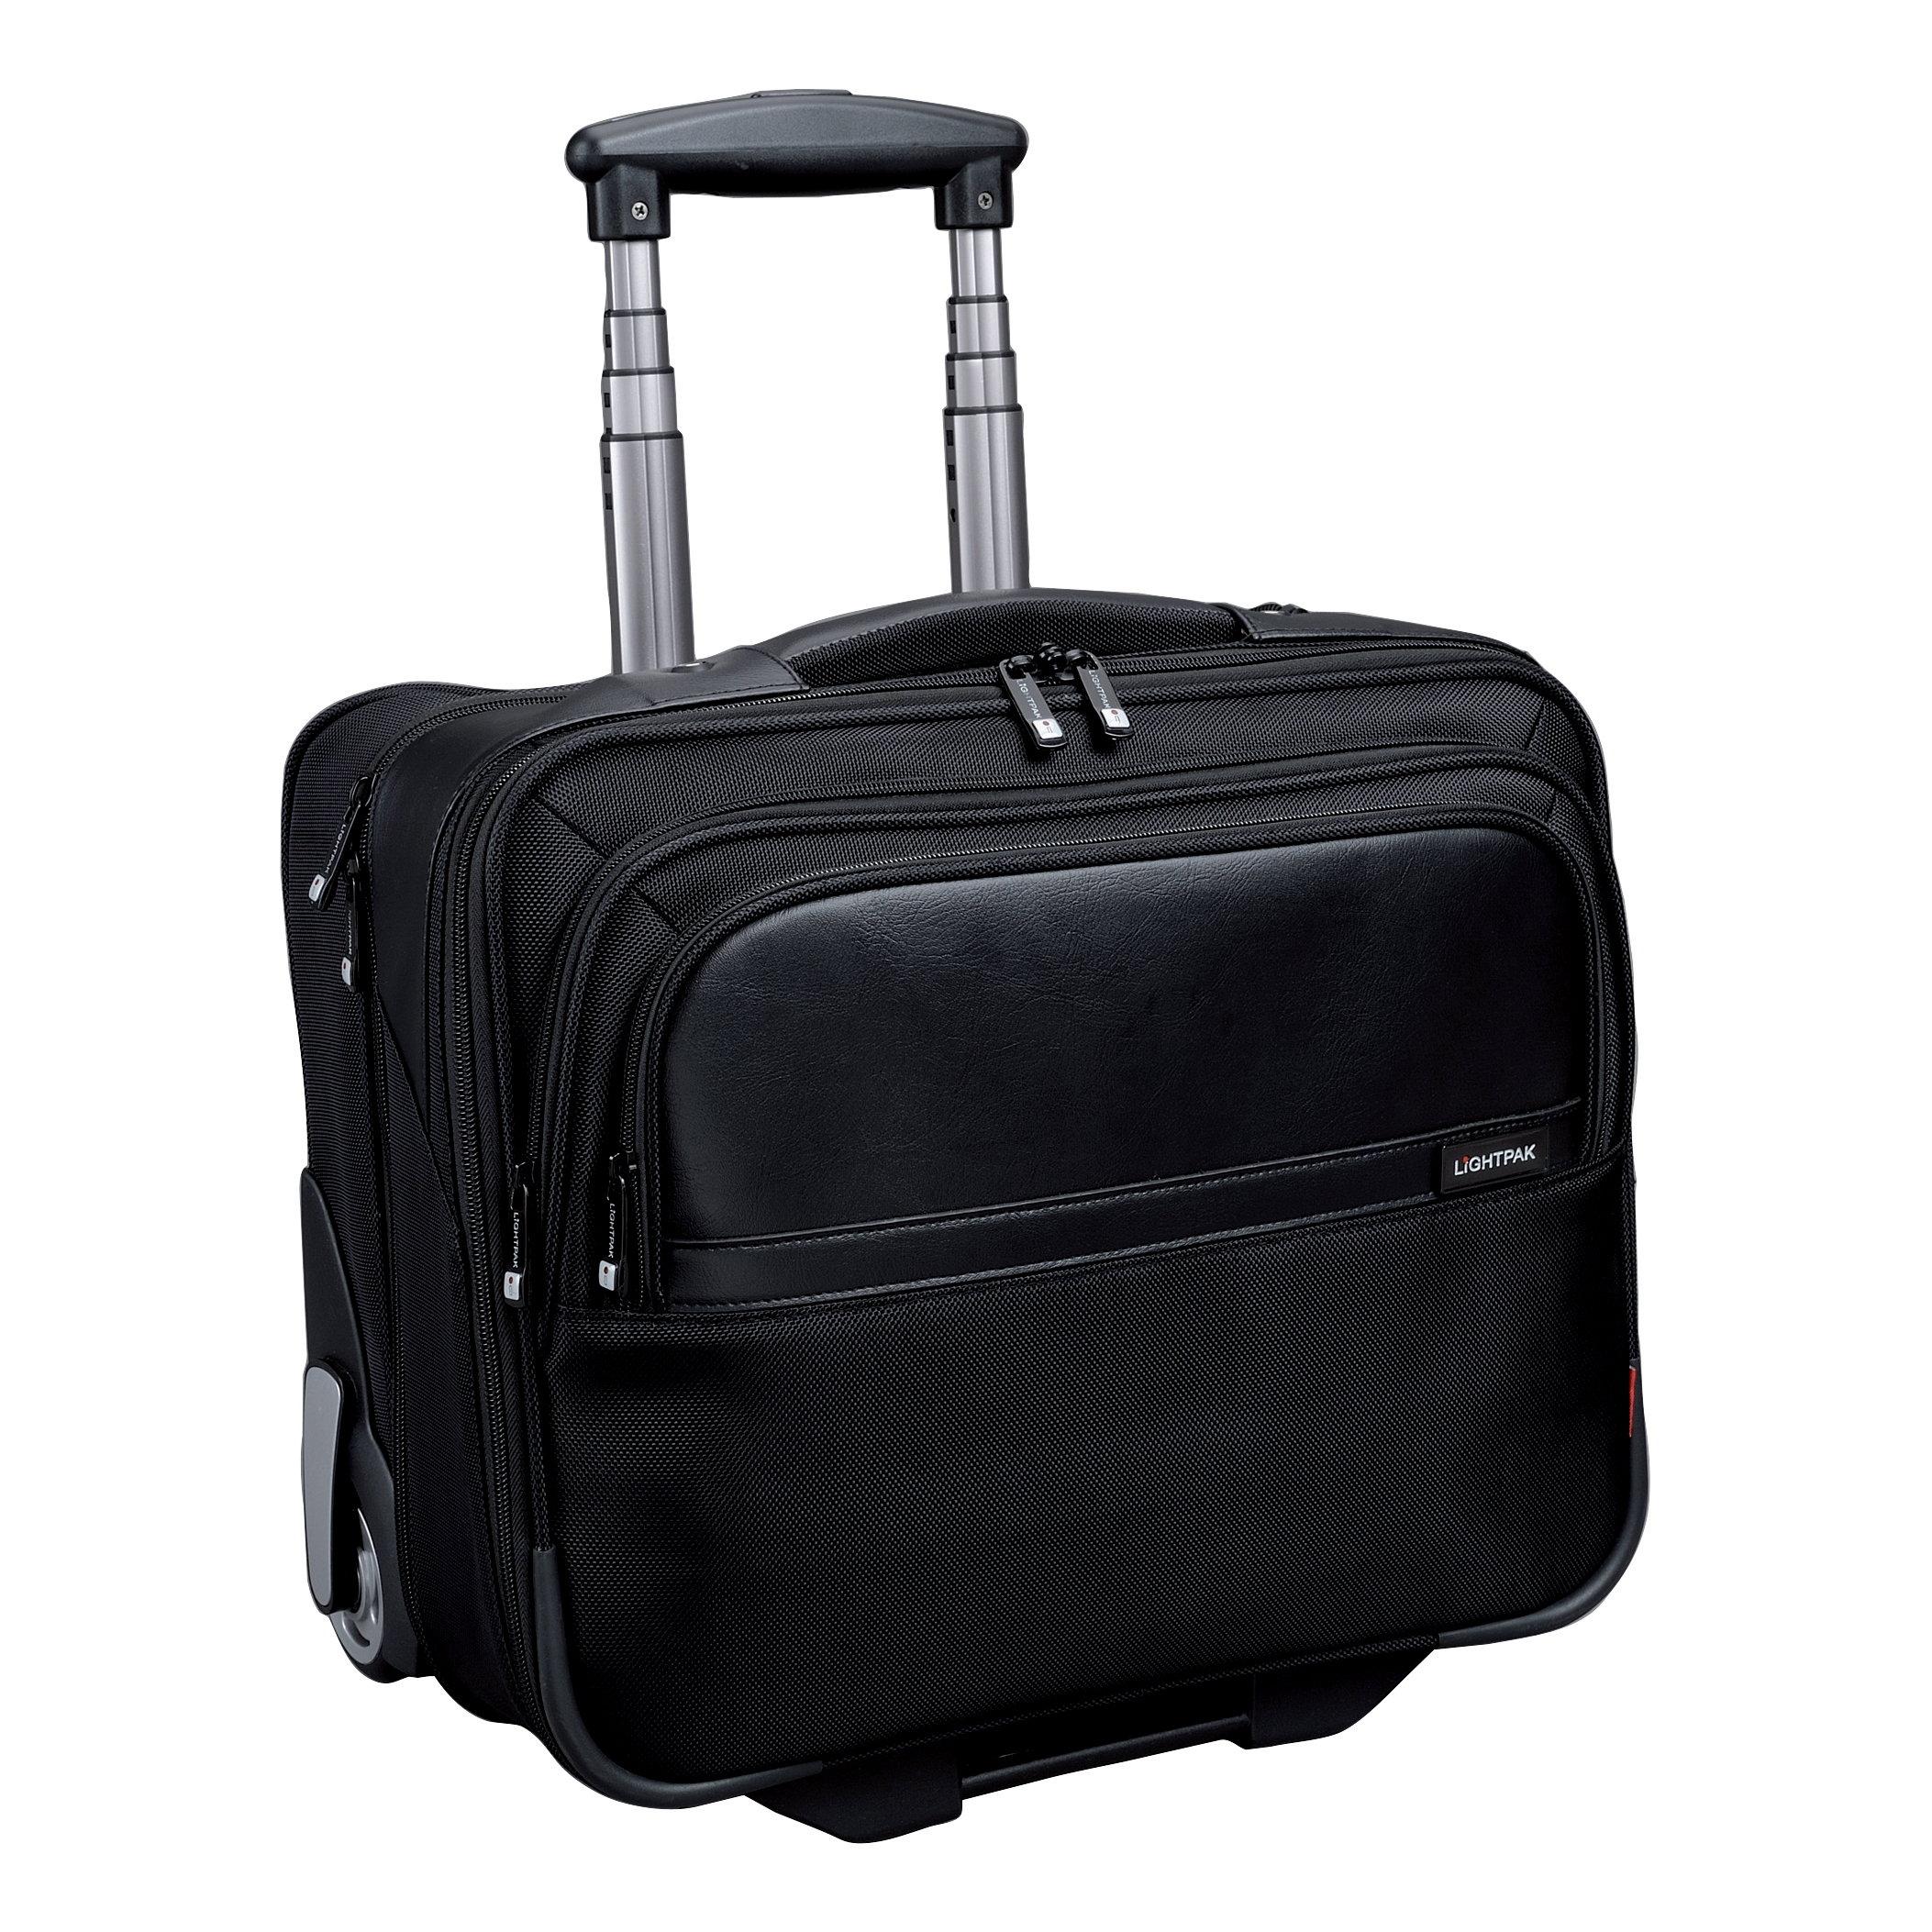 Briefcases & Luggage Lightpak Executive Trolley with Detachable Laptop Sleeve Nylon Capacity 17in Black Ref 46101